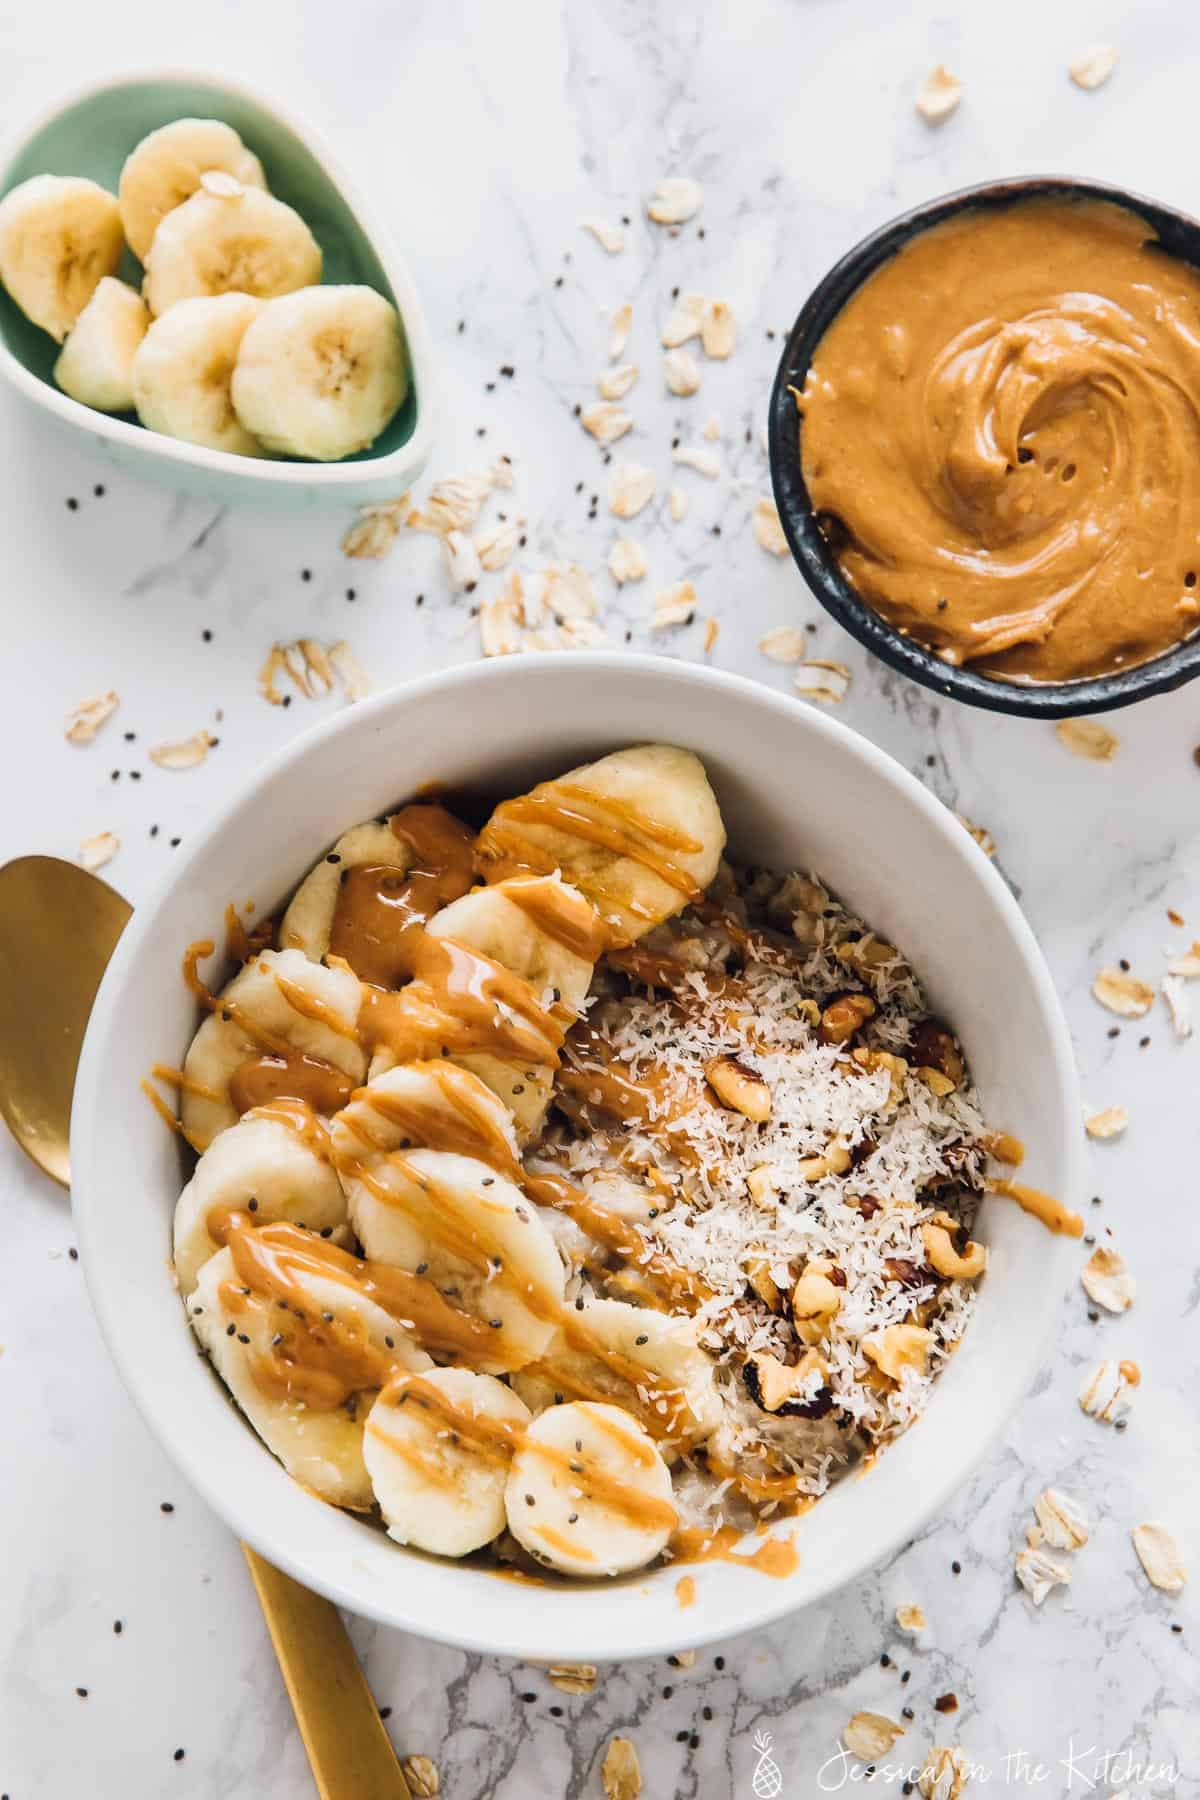 Overhead view of oats in a bowl with slices bananas and peanut butter drizzled on top.